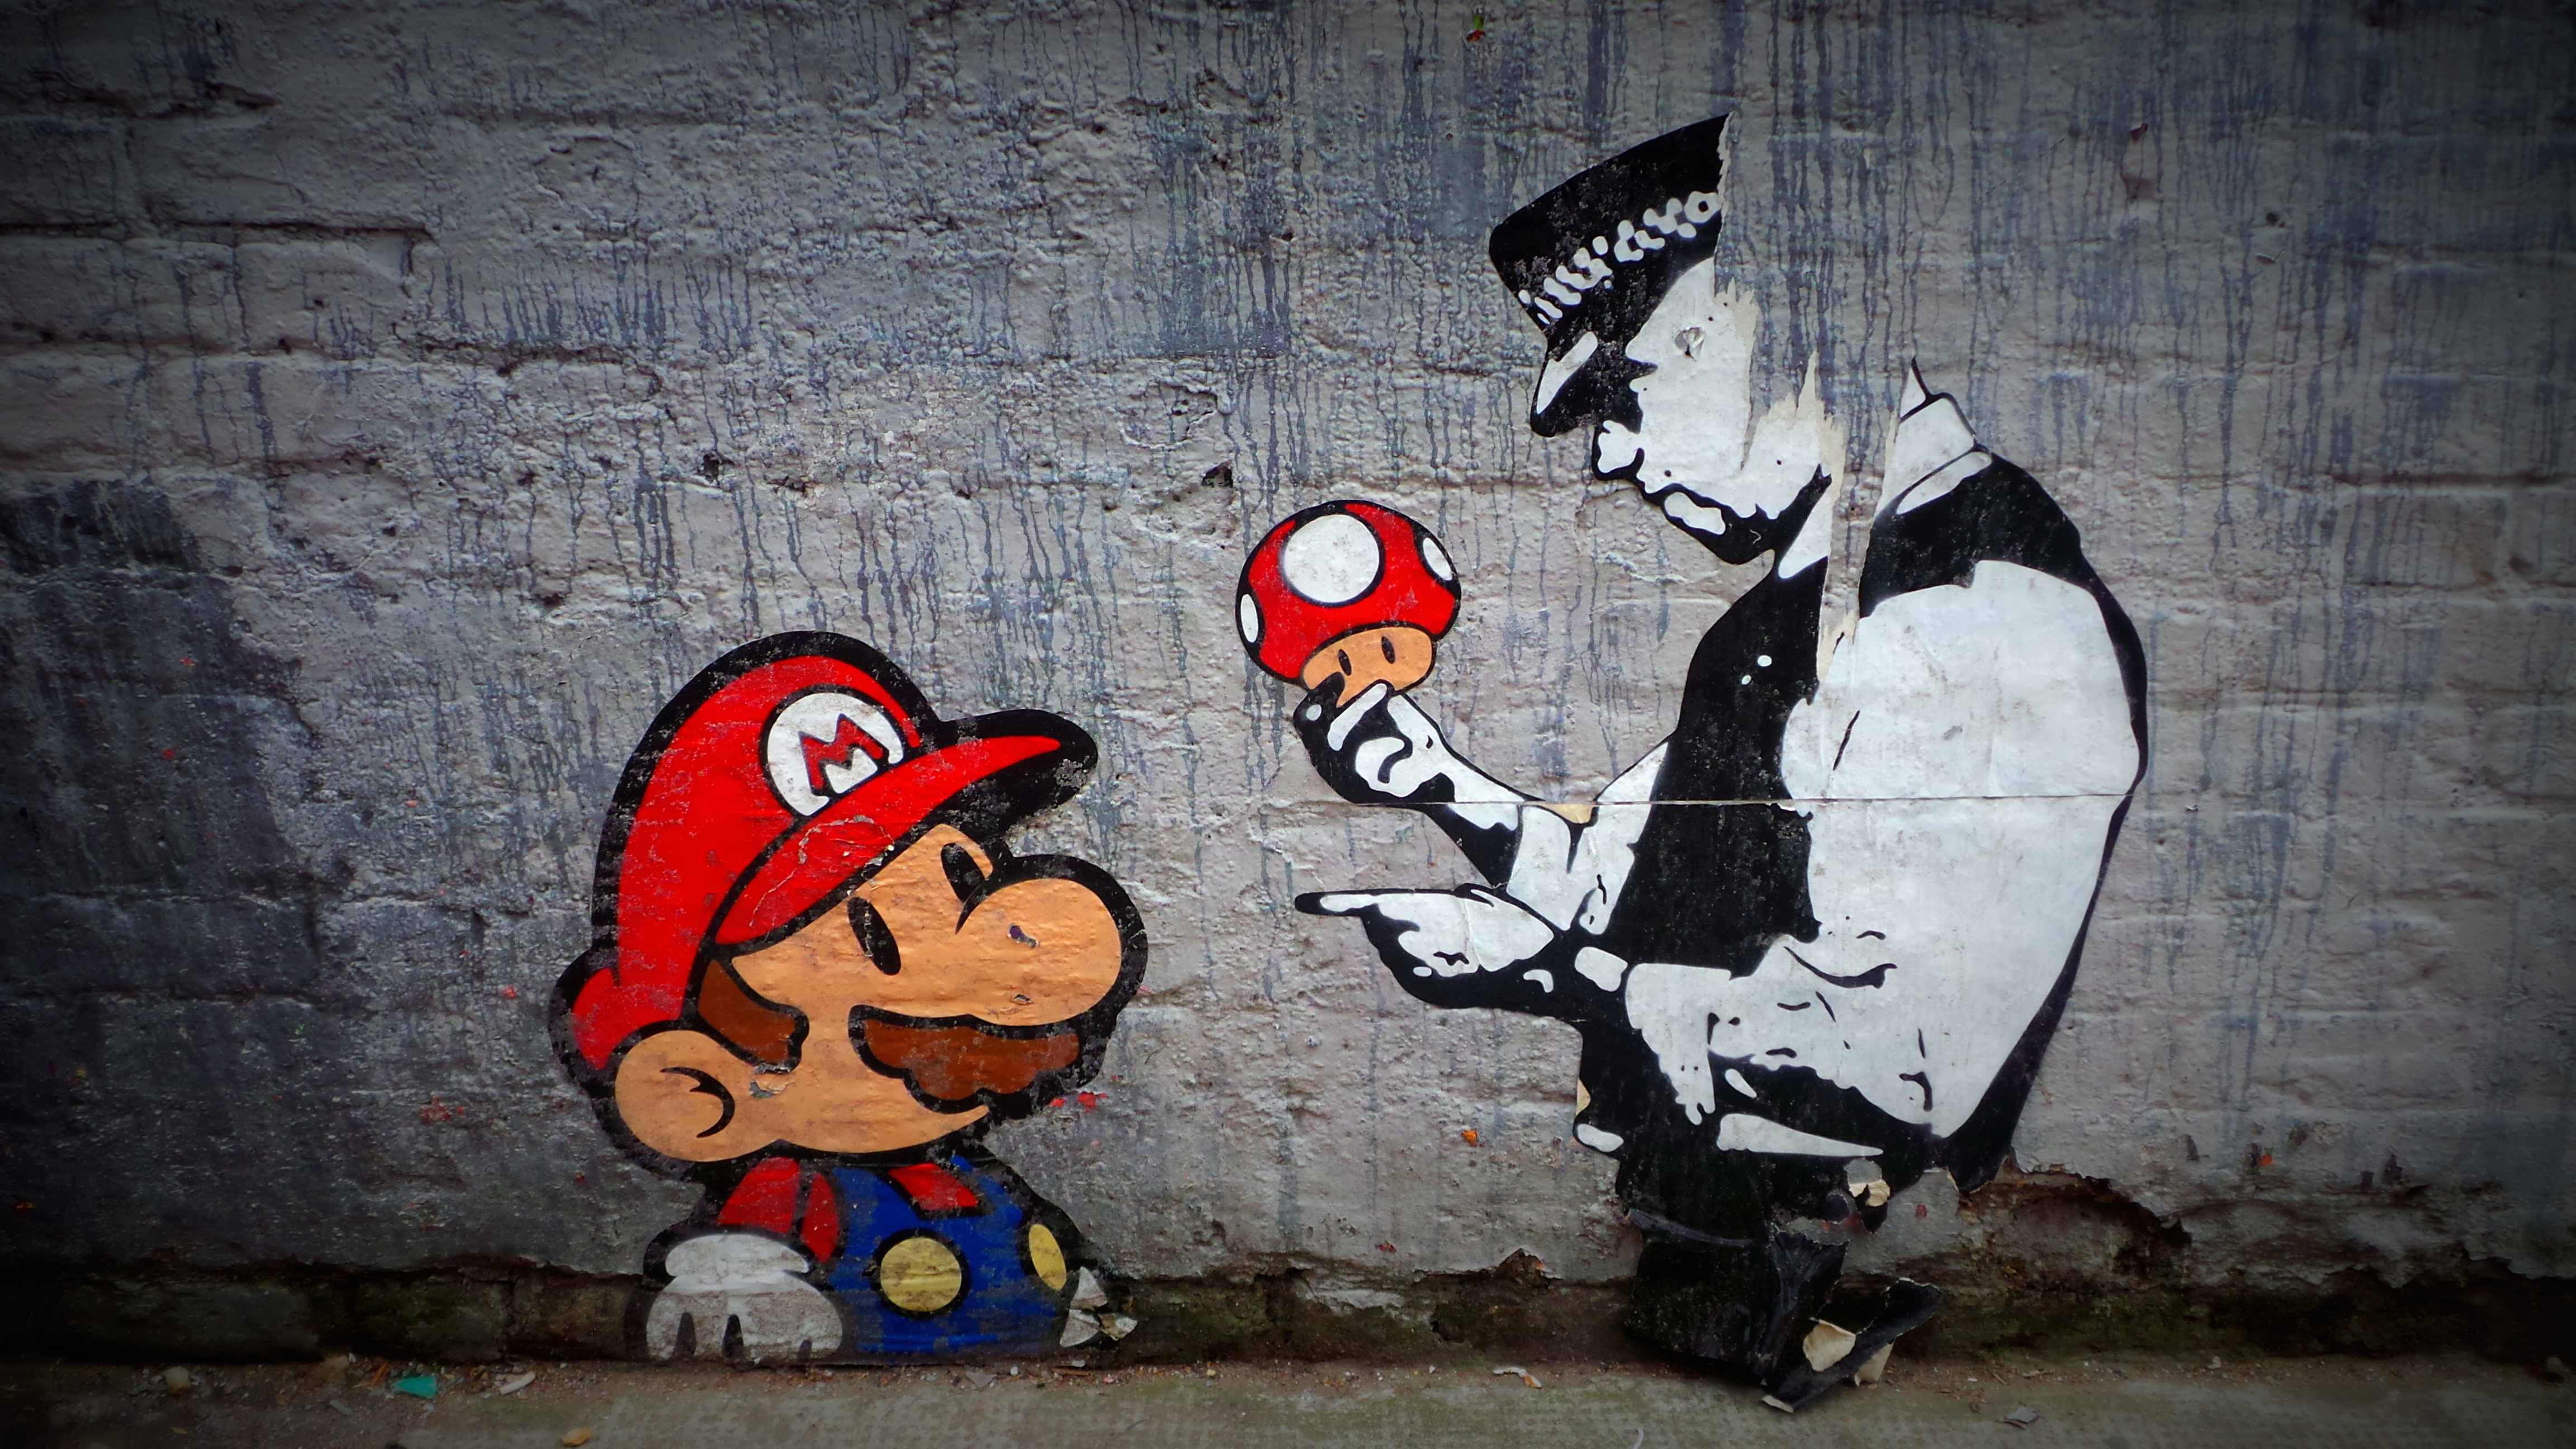 Famous graffiti art quotes - Because Sometimes Explanations Are Meaningless